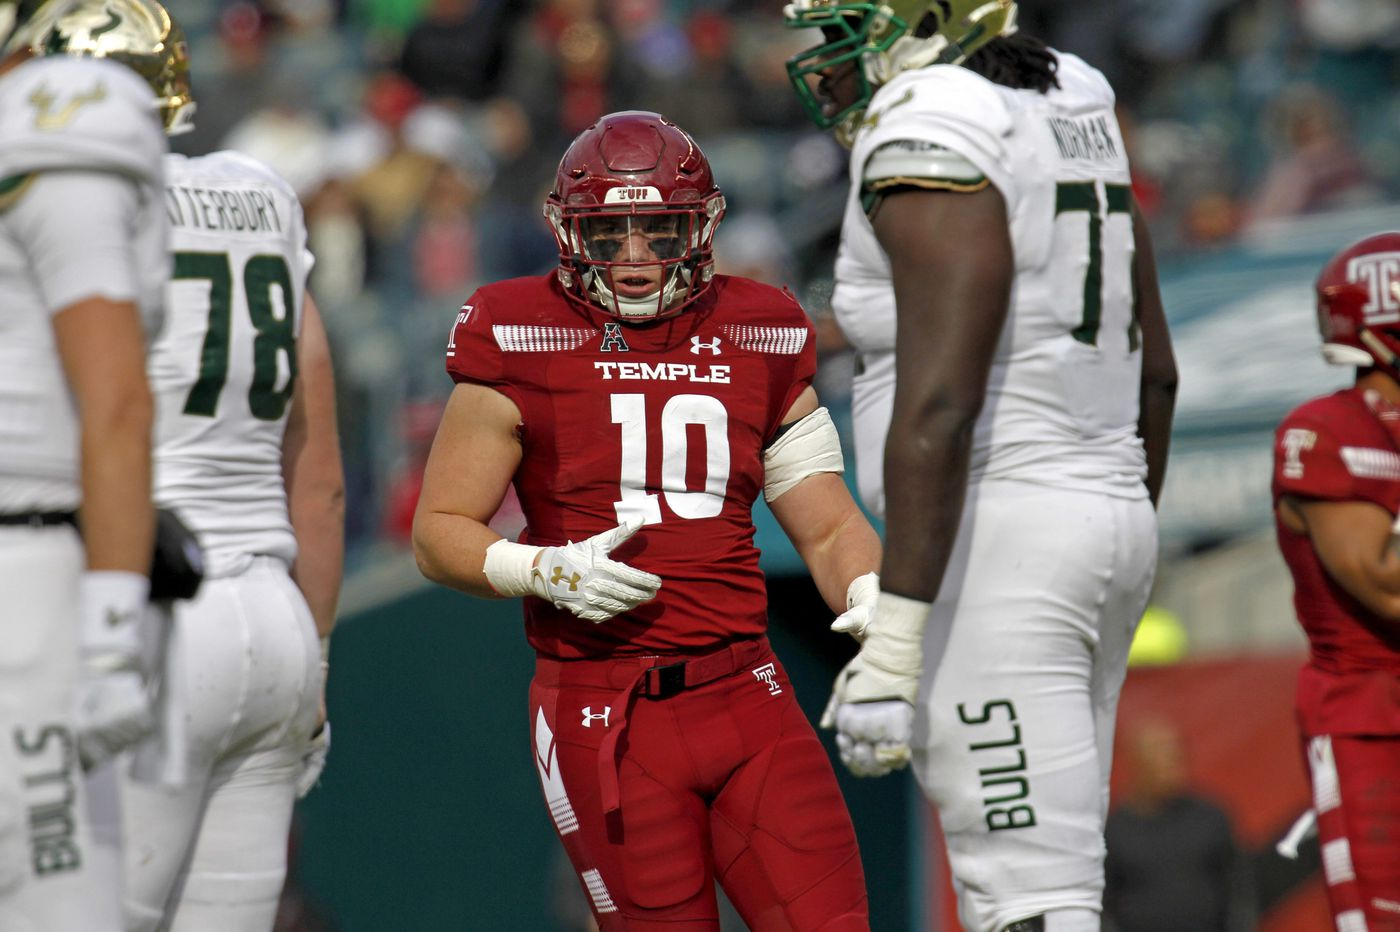 Temple's Zack Mesday has persevered, and it's paying off in a big way